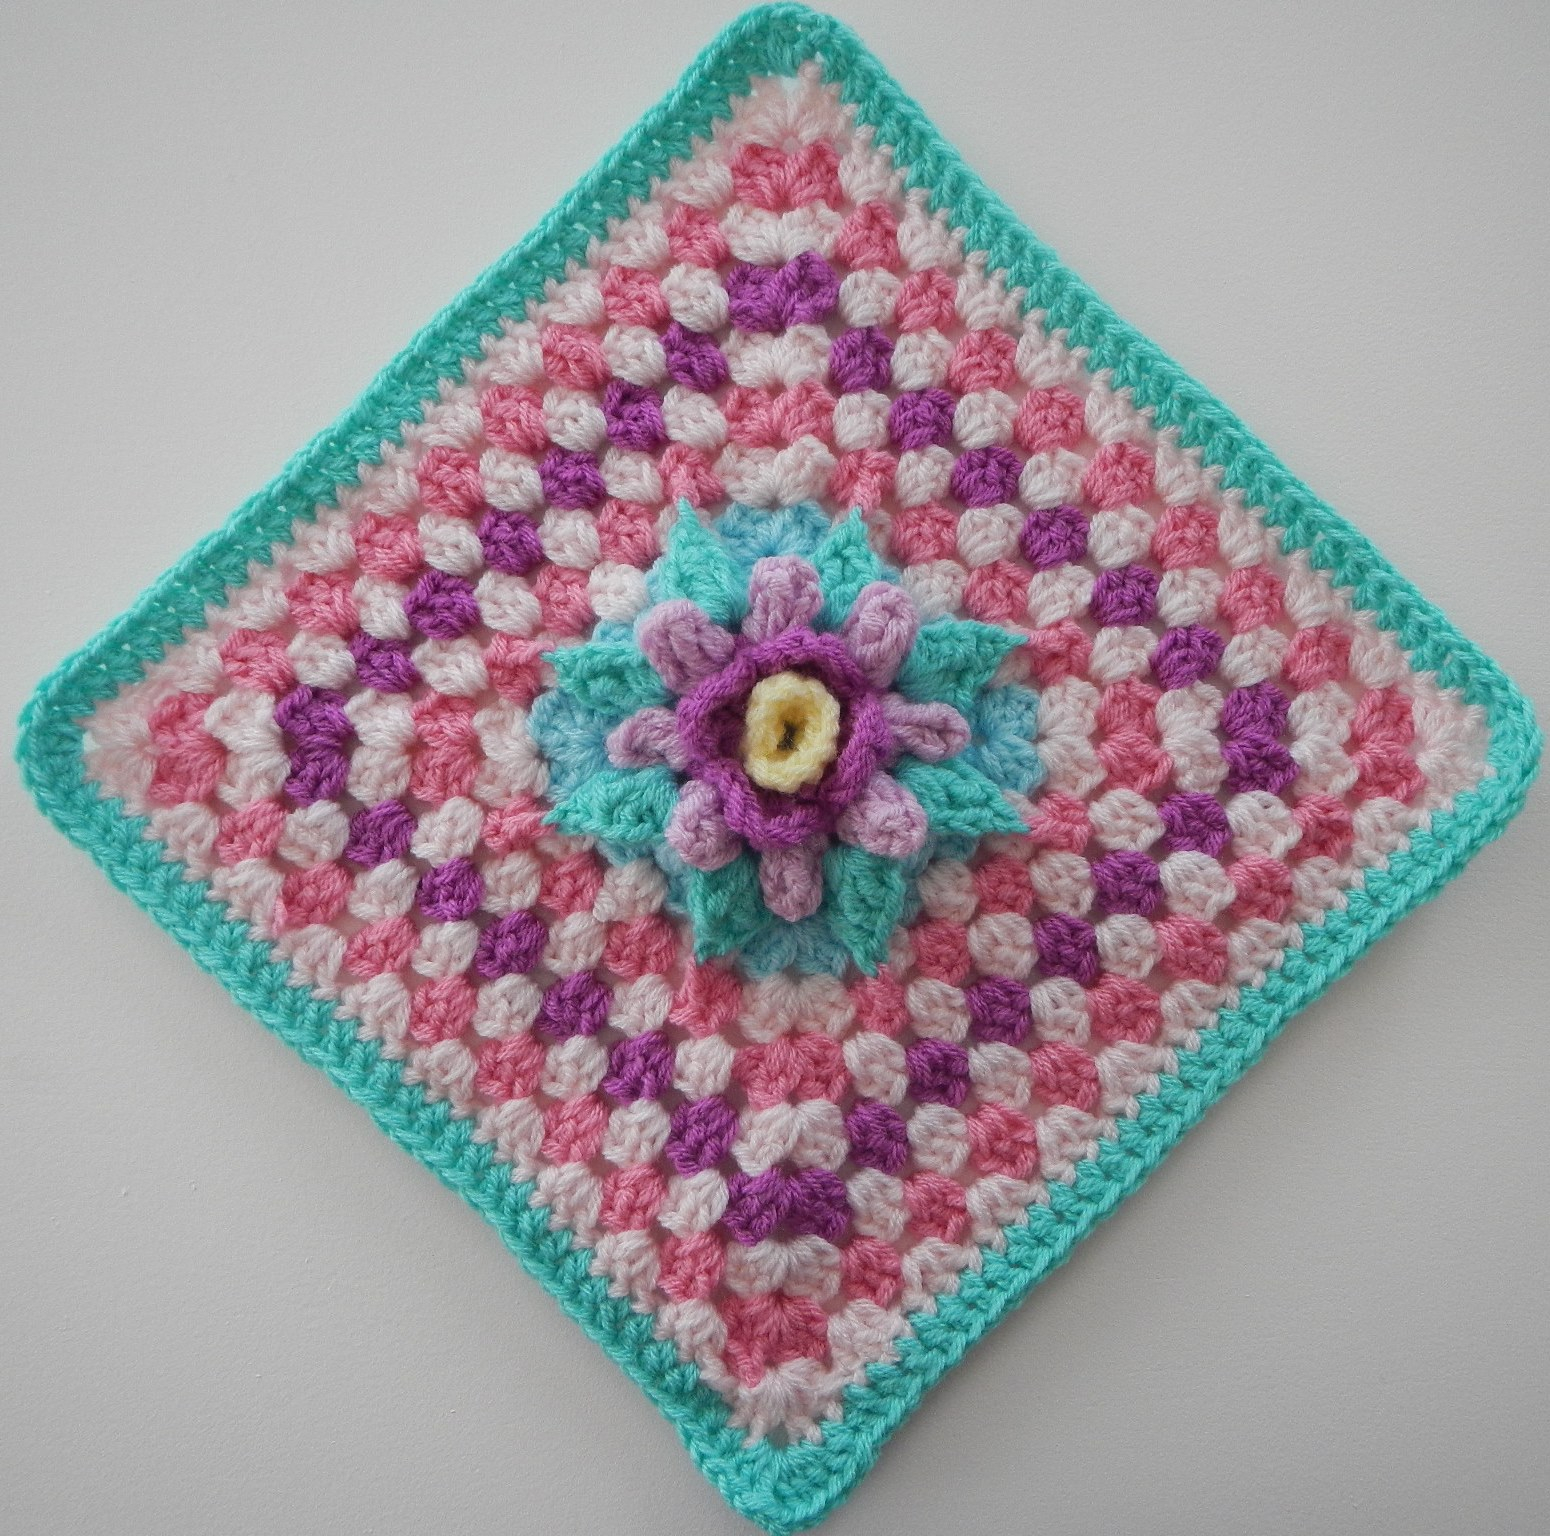 3 Magnificent Ideas of the Free Crochet Rose Afghan Pattern Apple Blossom Dreams February 2018